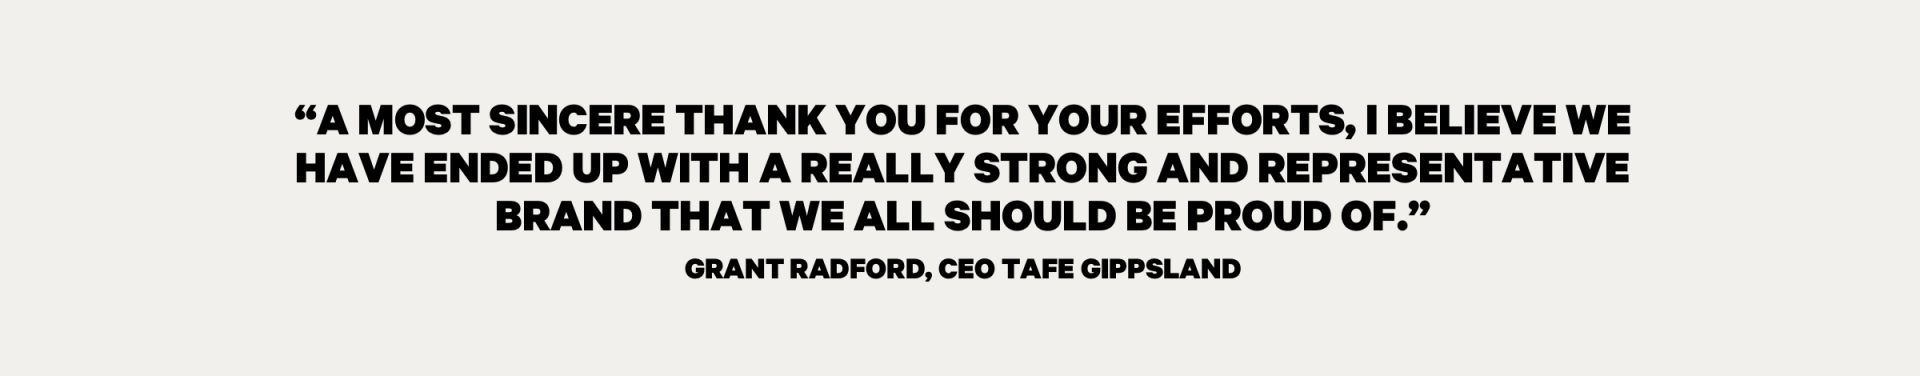 Quote from Grant Radford the CEO of TAFE Gippsland